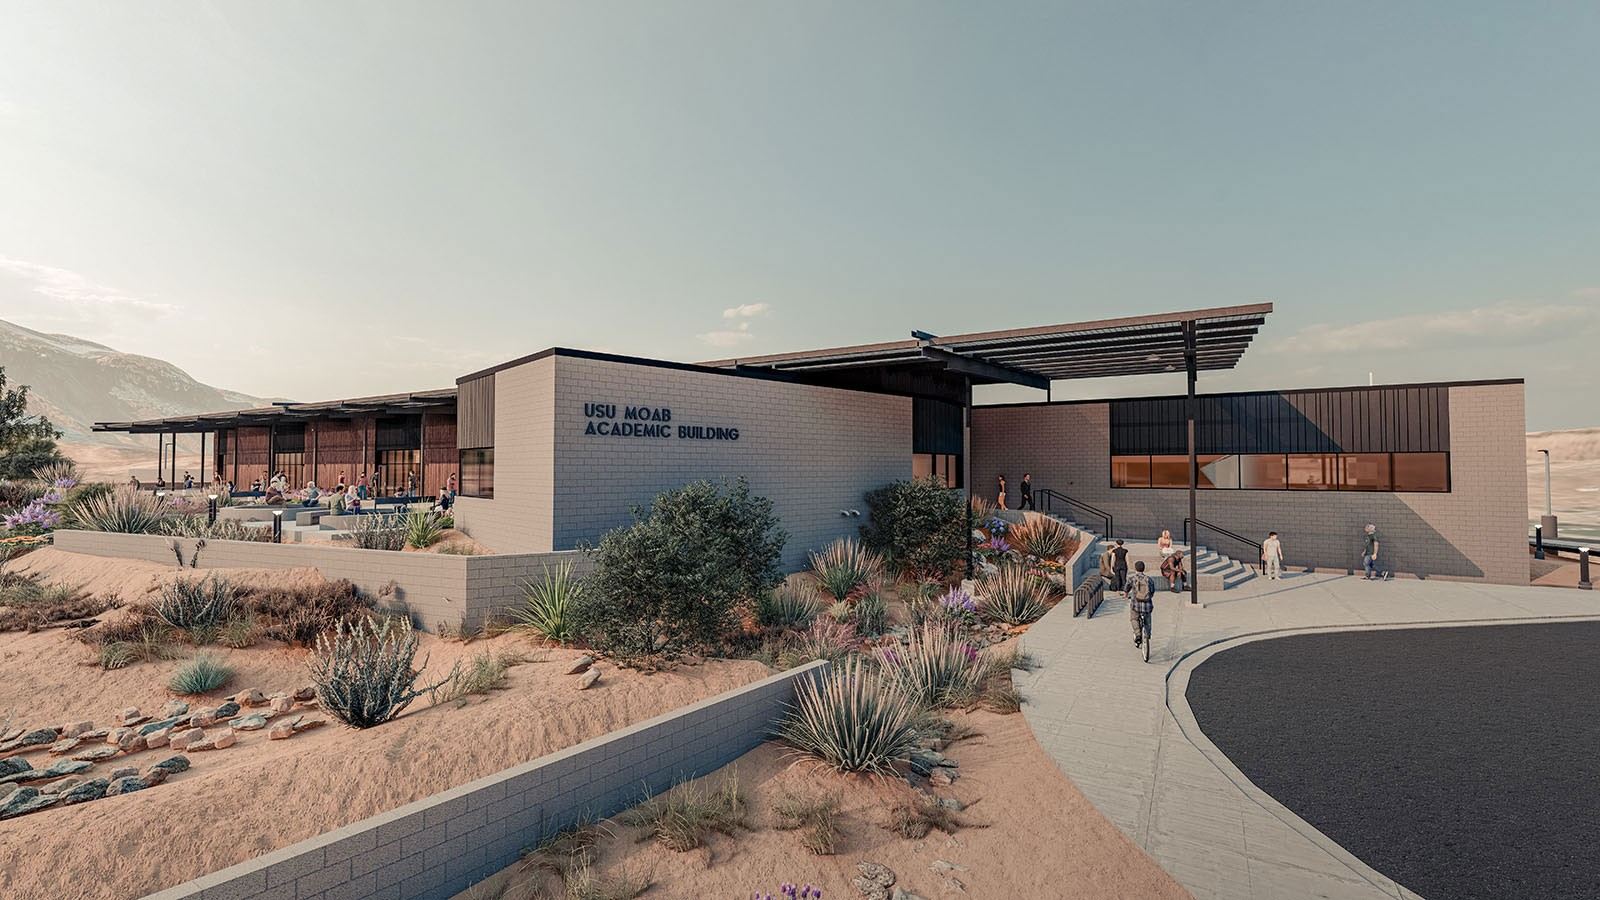 Rendering of USU Moab signage and building.